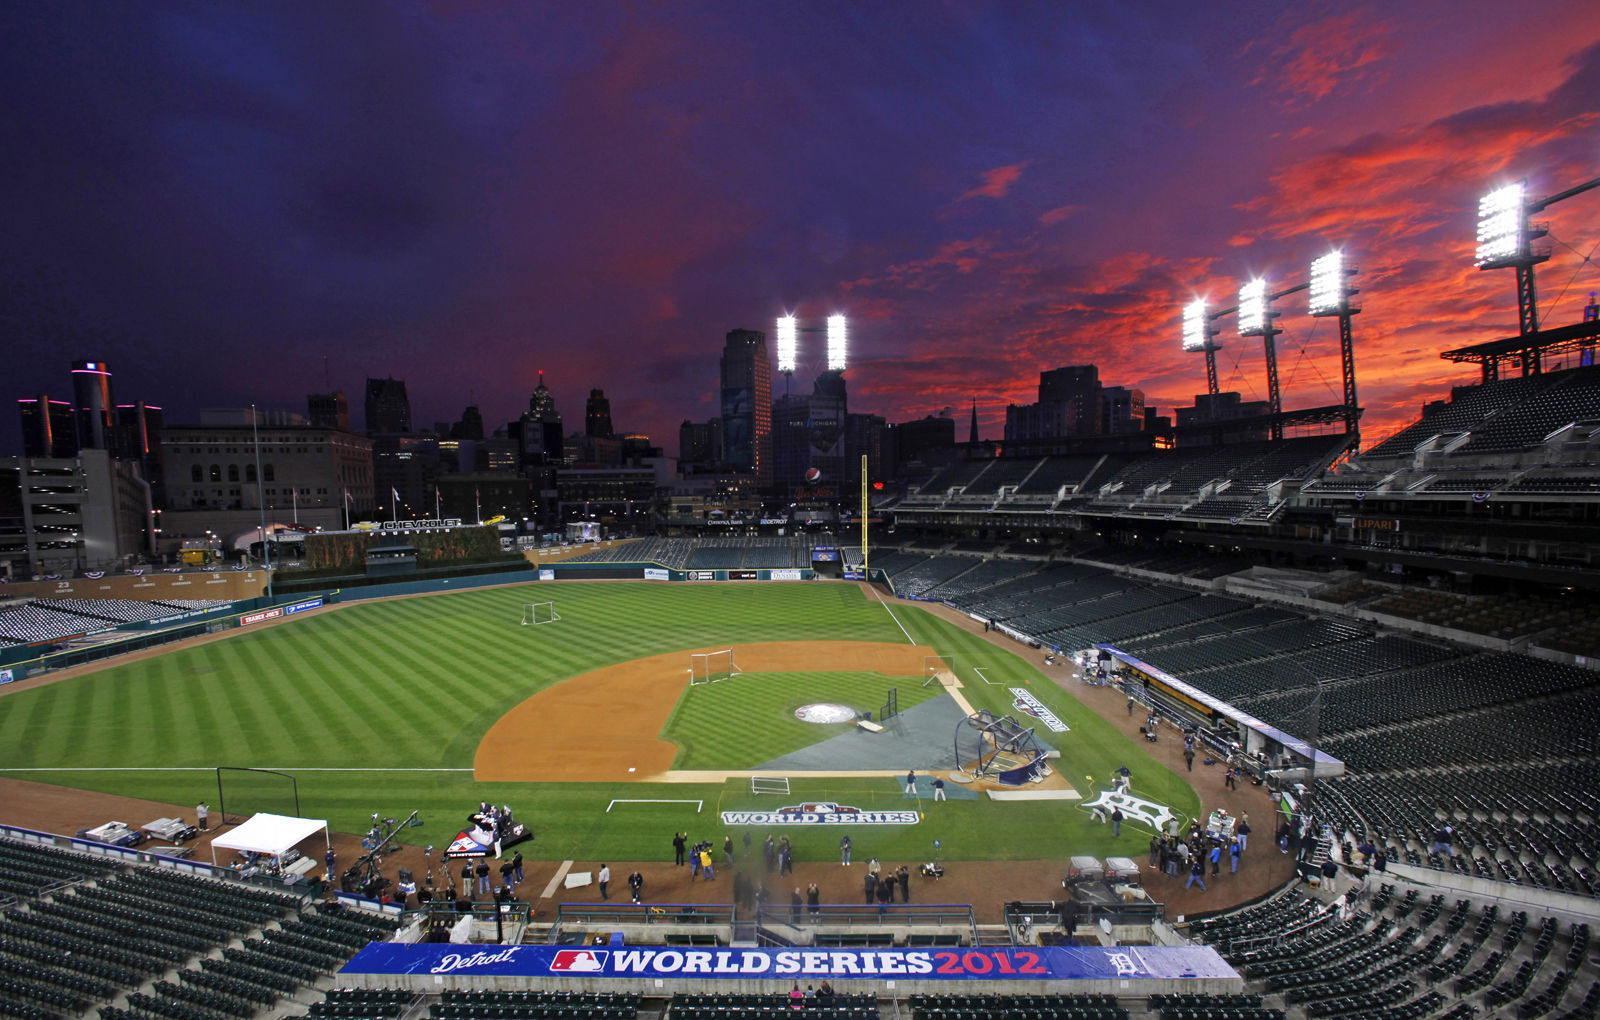 Comerica Park seen here before Game 3 of the 2012 World Series is the home of the Detroit Tigers. It comes in at No. 10 on the list with an average cost of $75.50. File. (AP Photo/Paul Sancya )